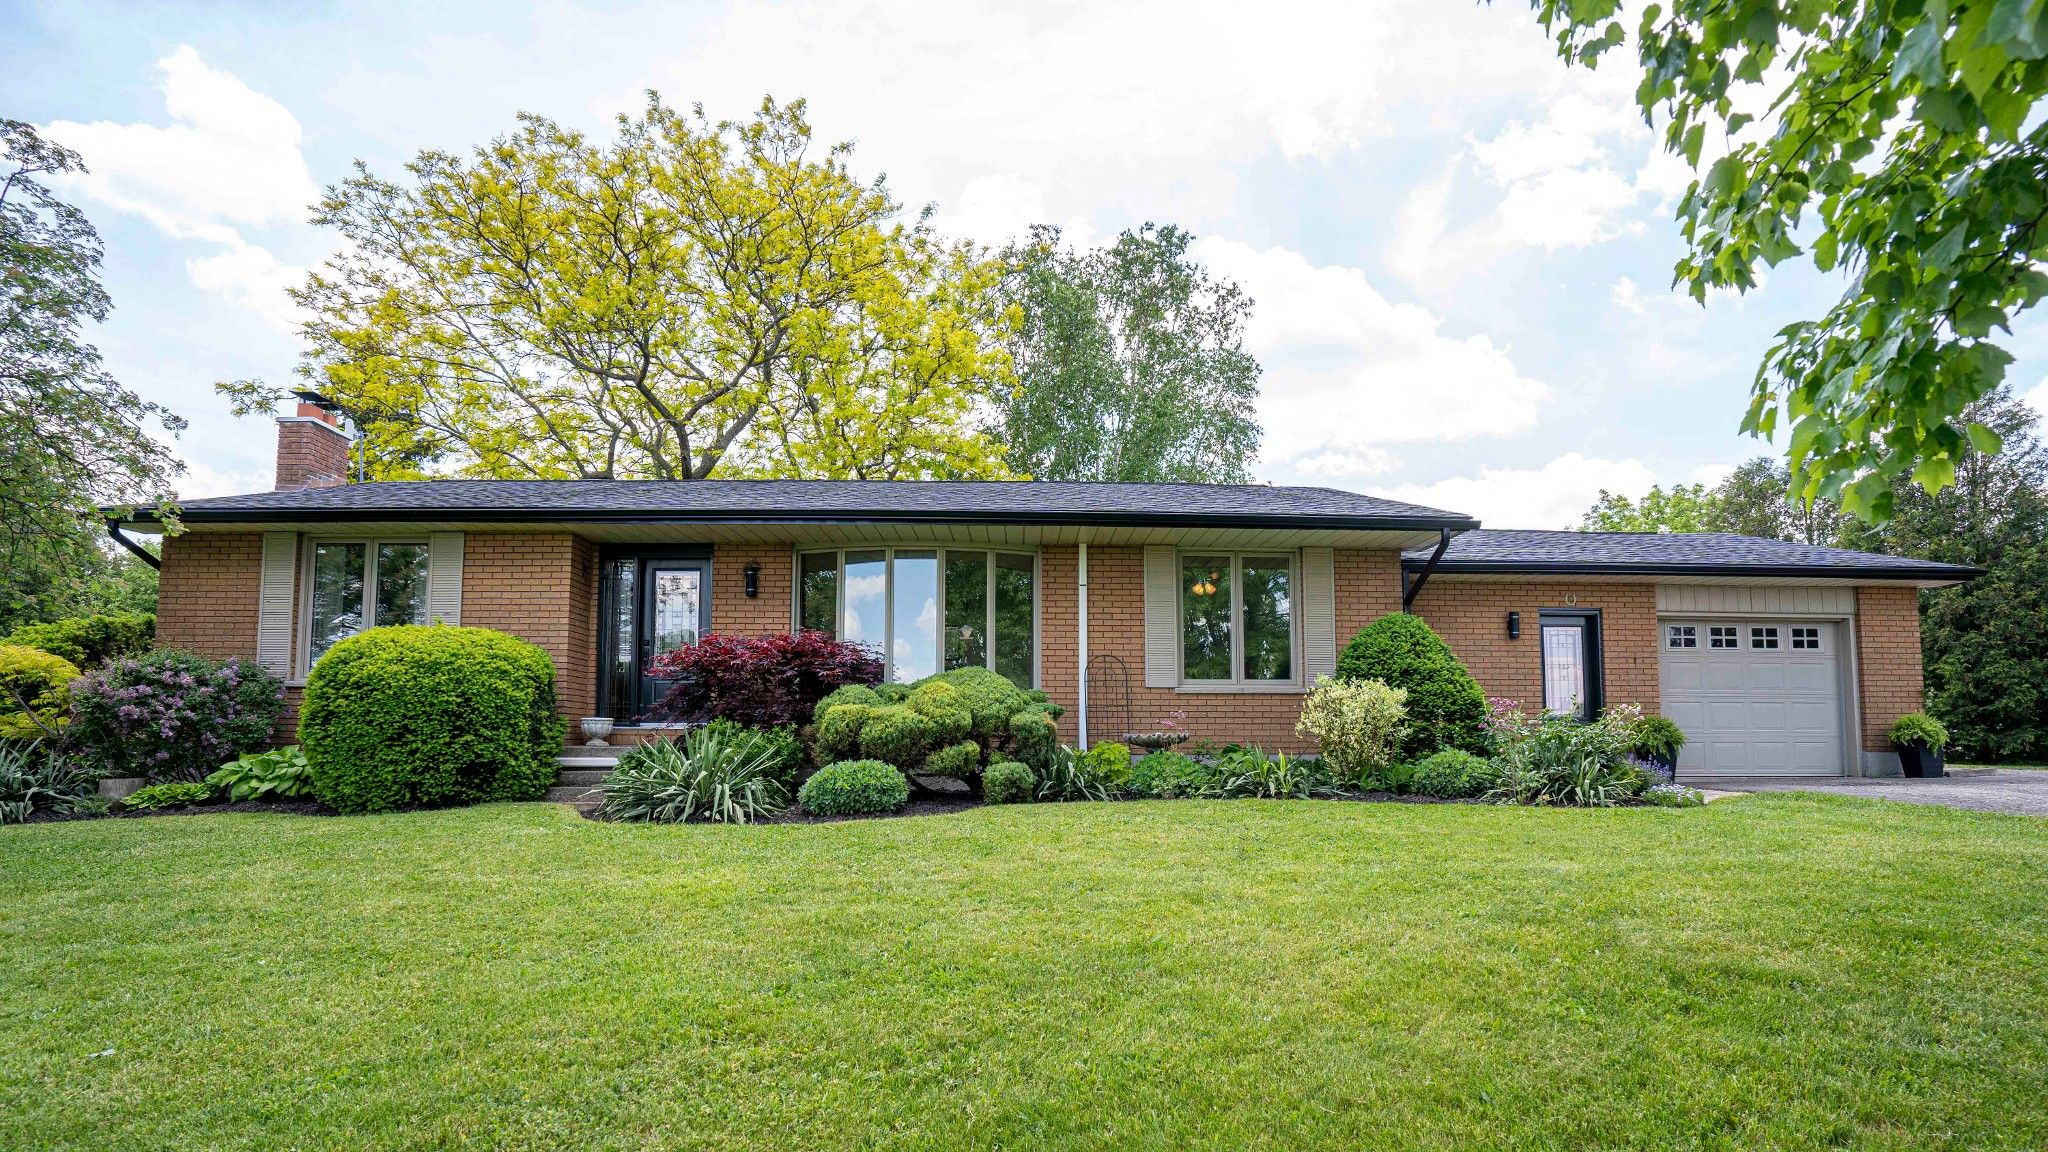 Main Photo: 5011 Avon Drive in Springfield: Residential for sale : MLS®# 40122468